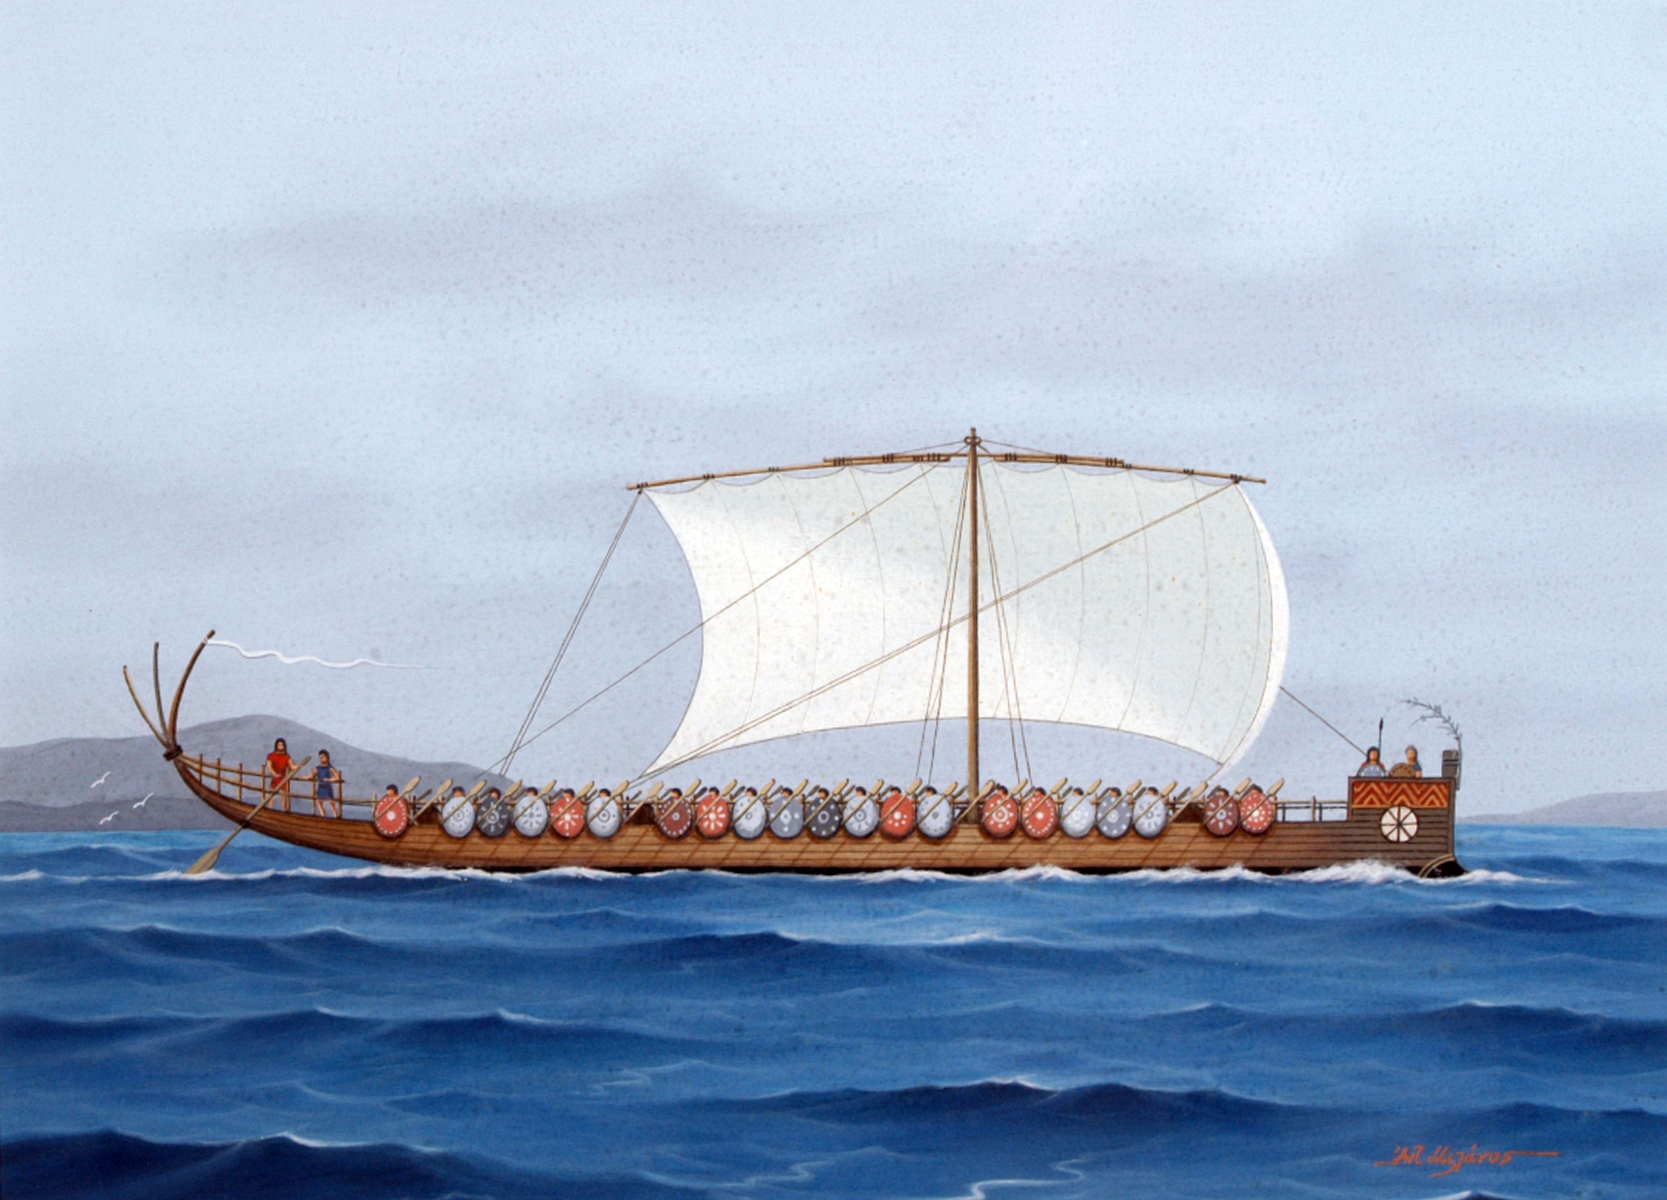 the argo, part of the argonautica retold story